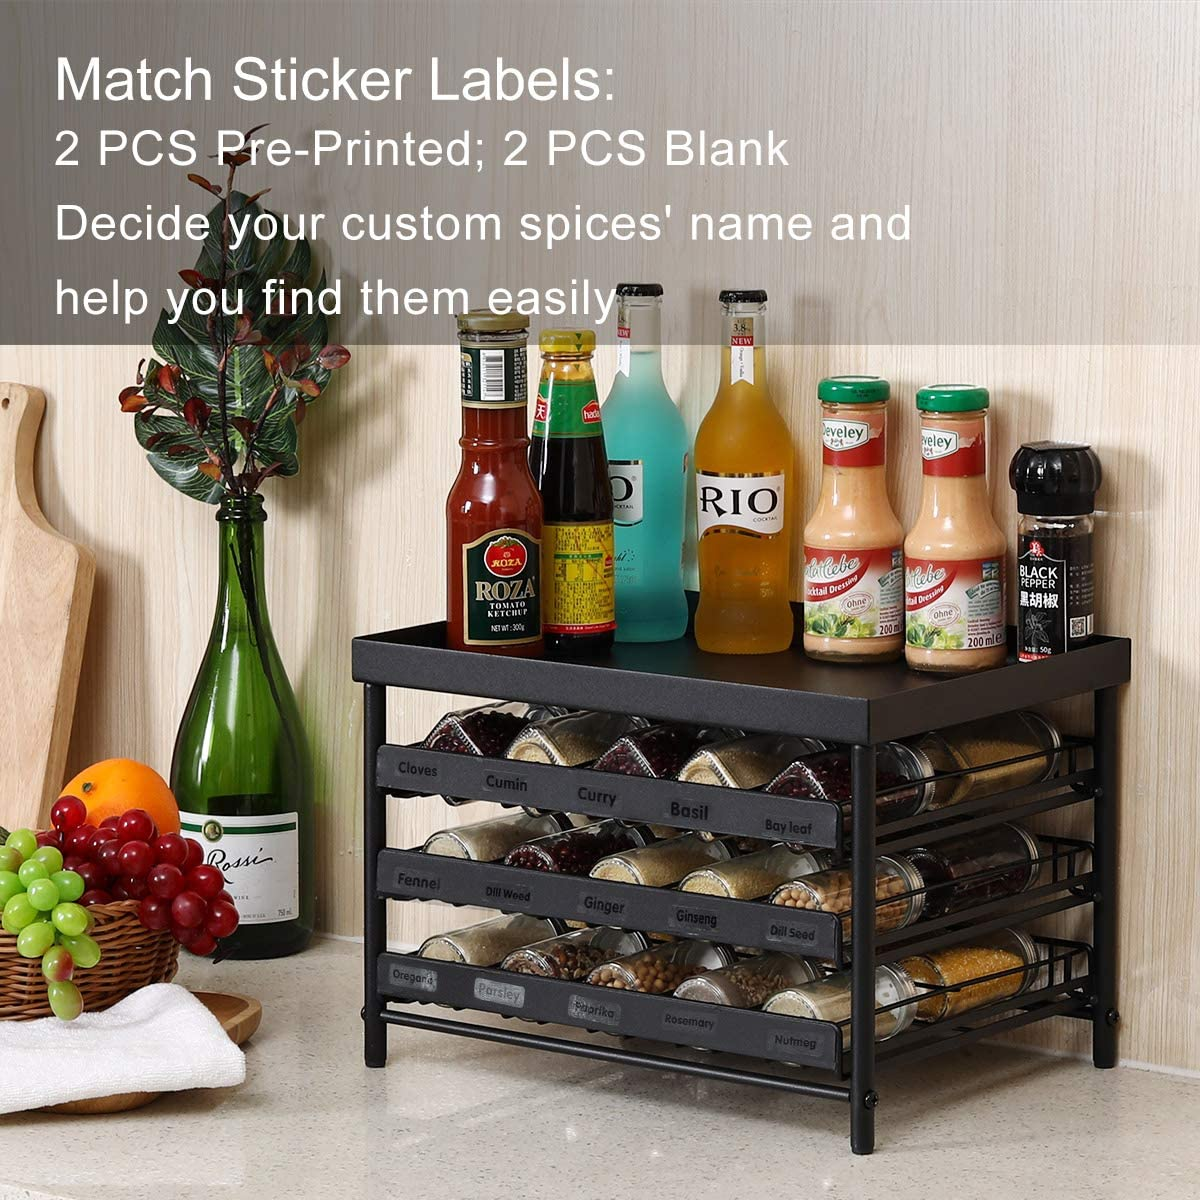 Pantry Fit For Countertop Cabinet Upgrade Version Frosted Black Esylife Stackable 30 Jars 3 Tier Spice Rack Organizer With Pull Out Drawers And Labels Home Kitchen Kitchen Storage Organisation